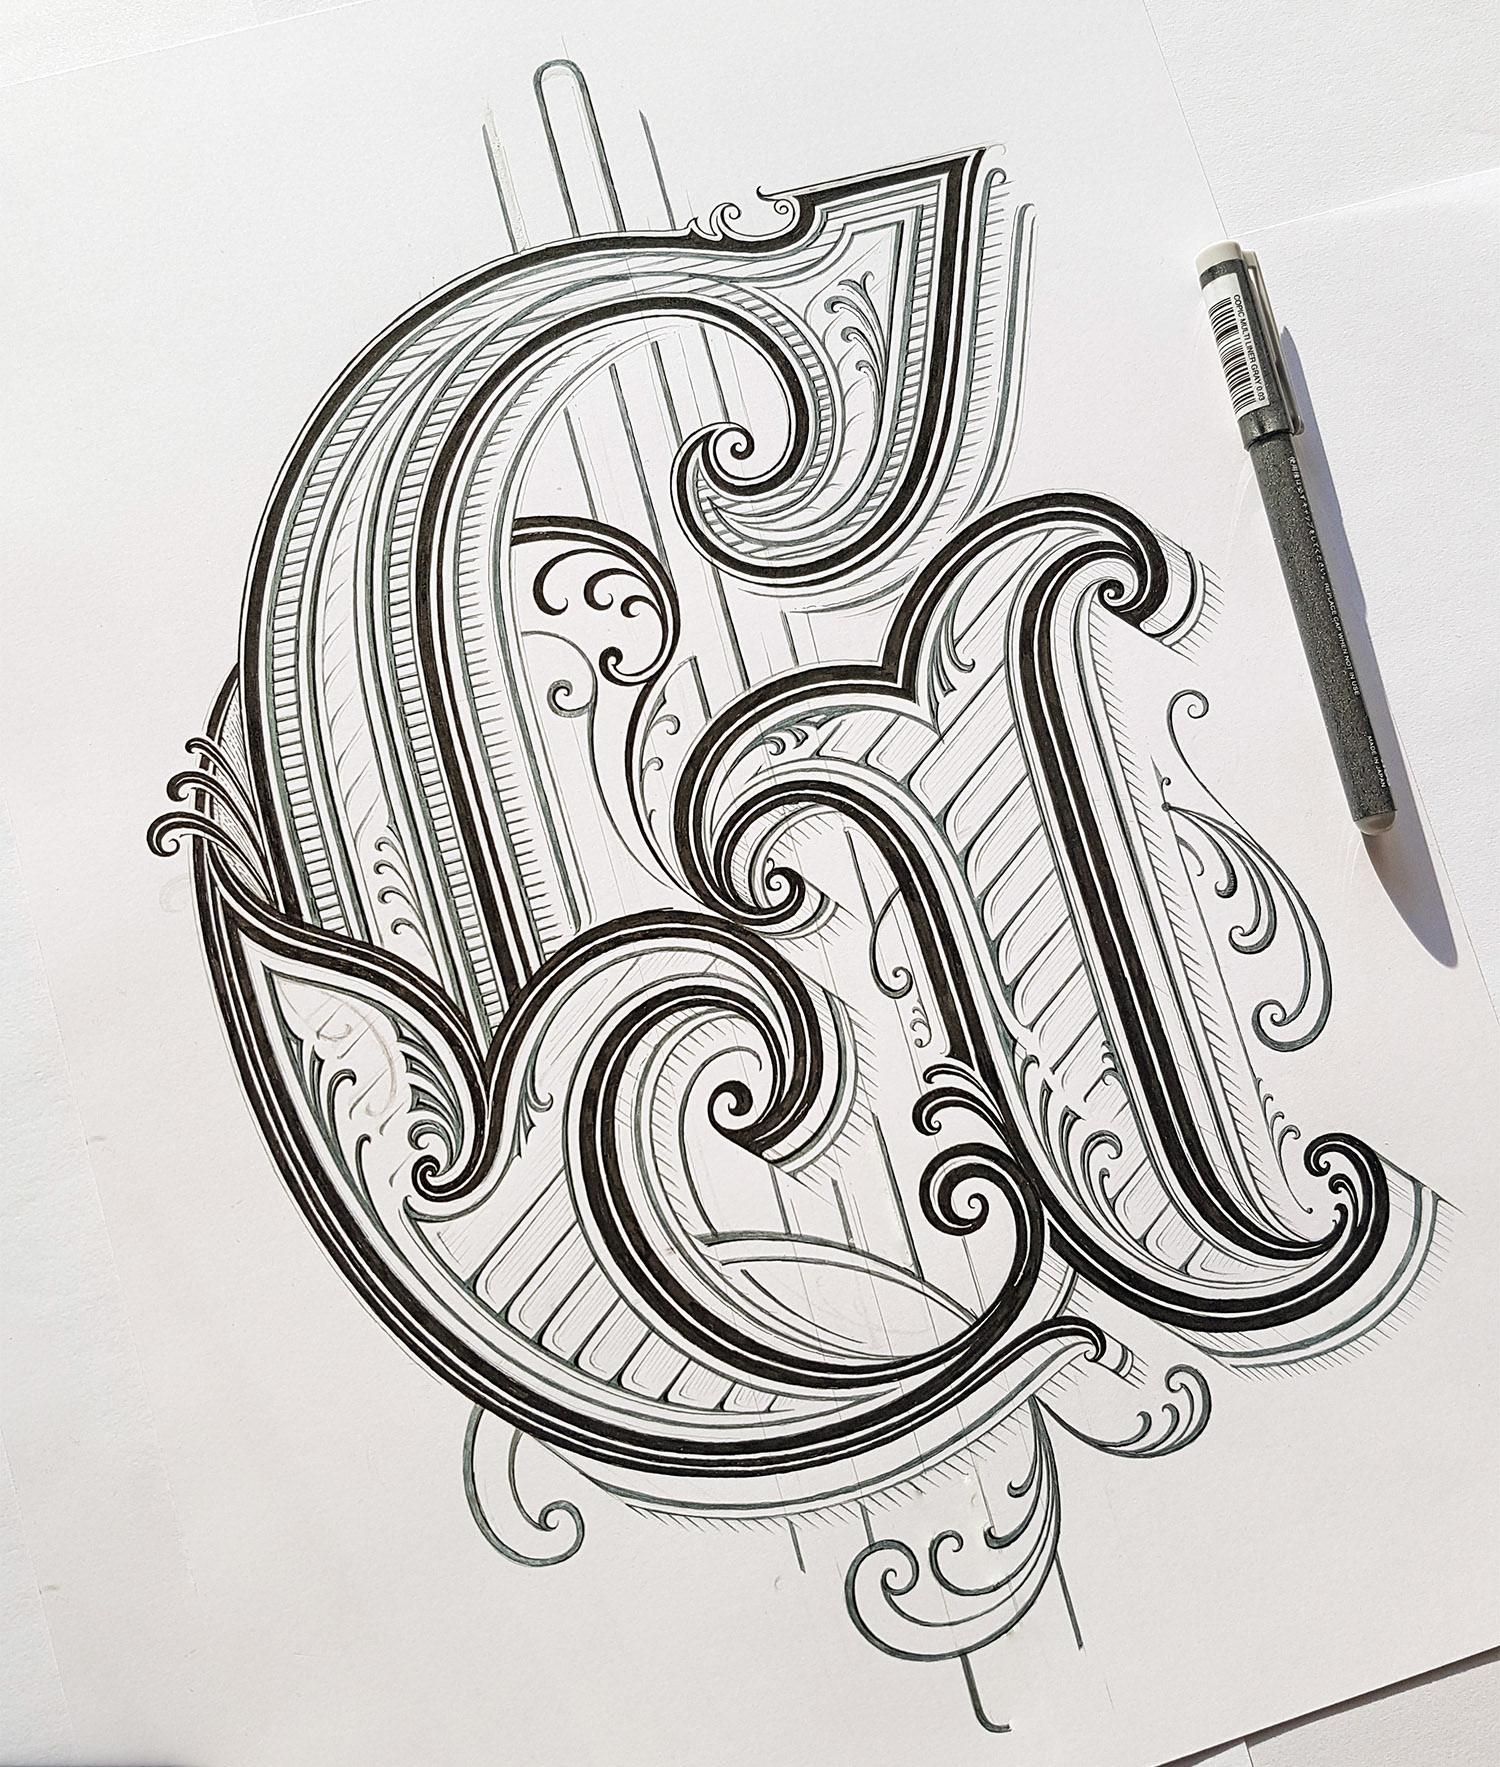 Graphic Design,Typography,Calligraphy